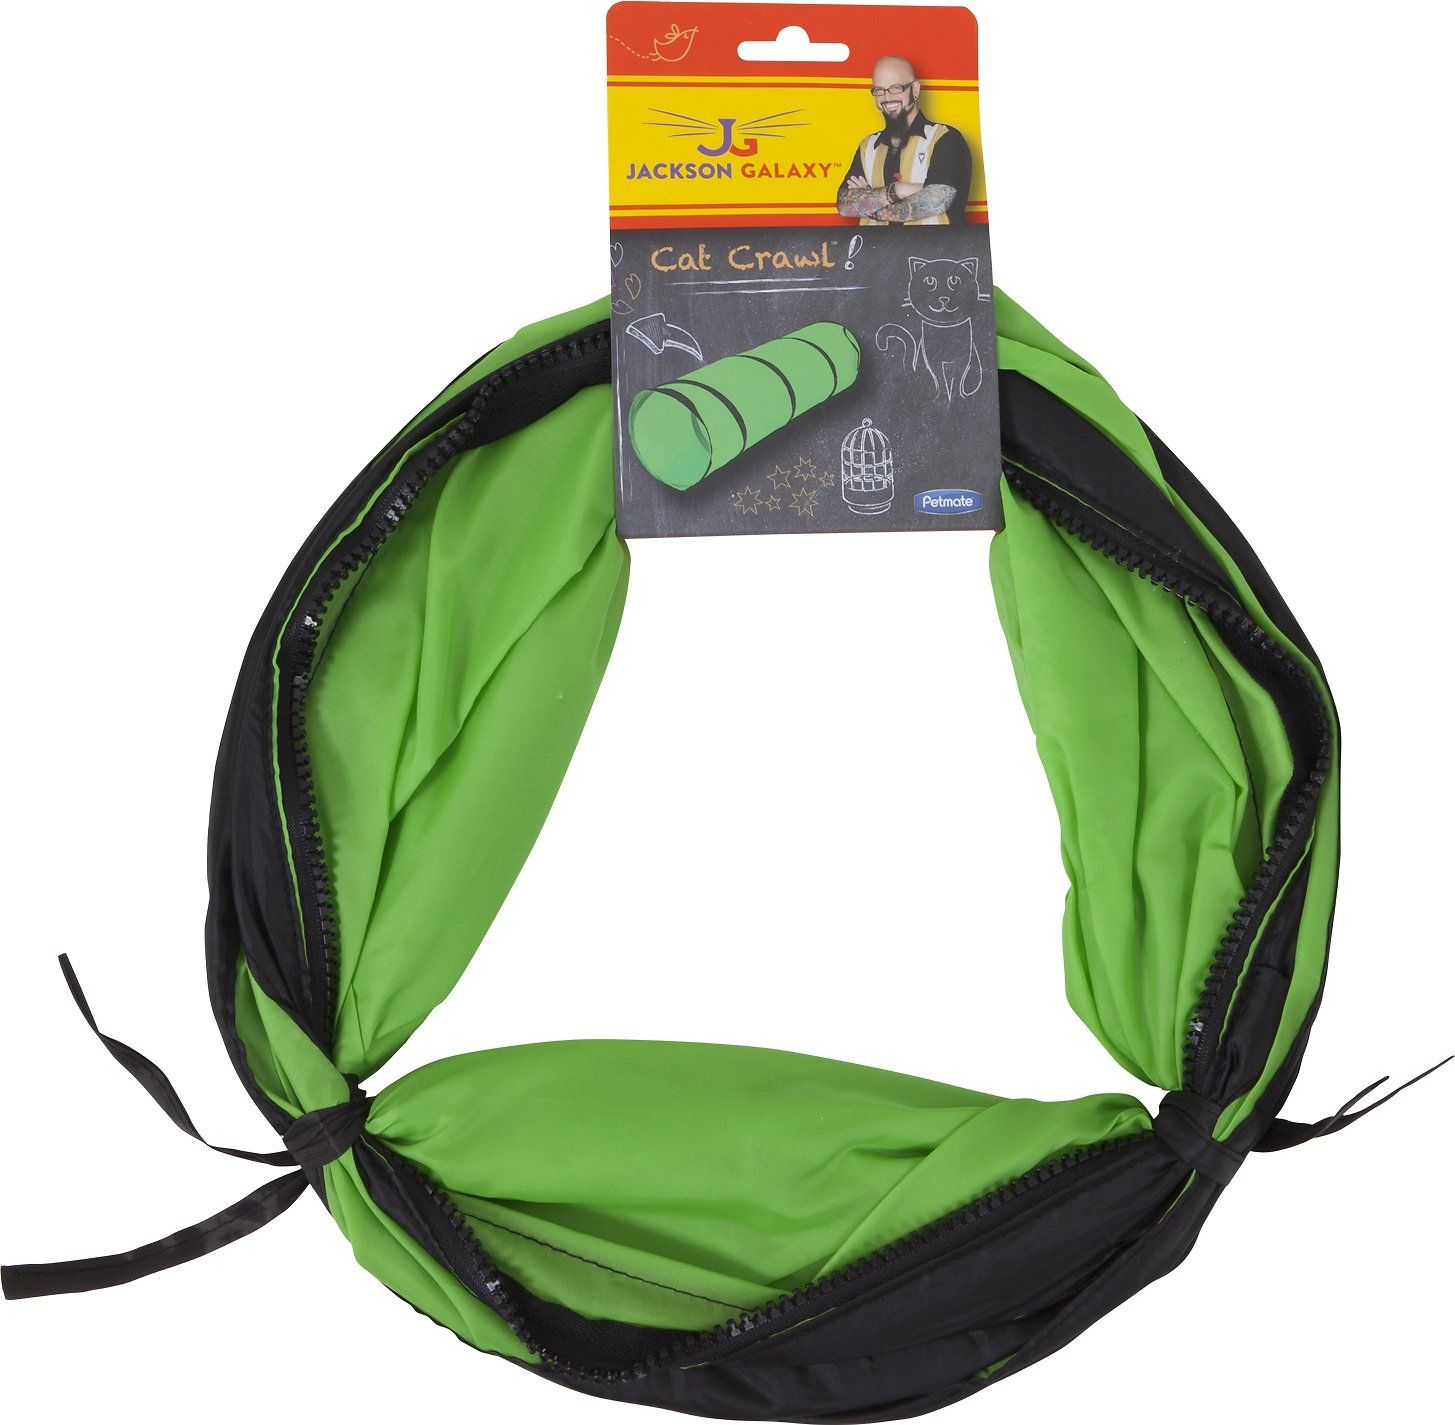 Jackson Galaxy Cat Crawl Cat Toy is not just a tunnel, but